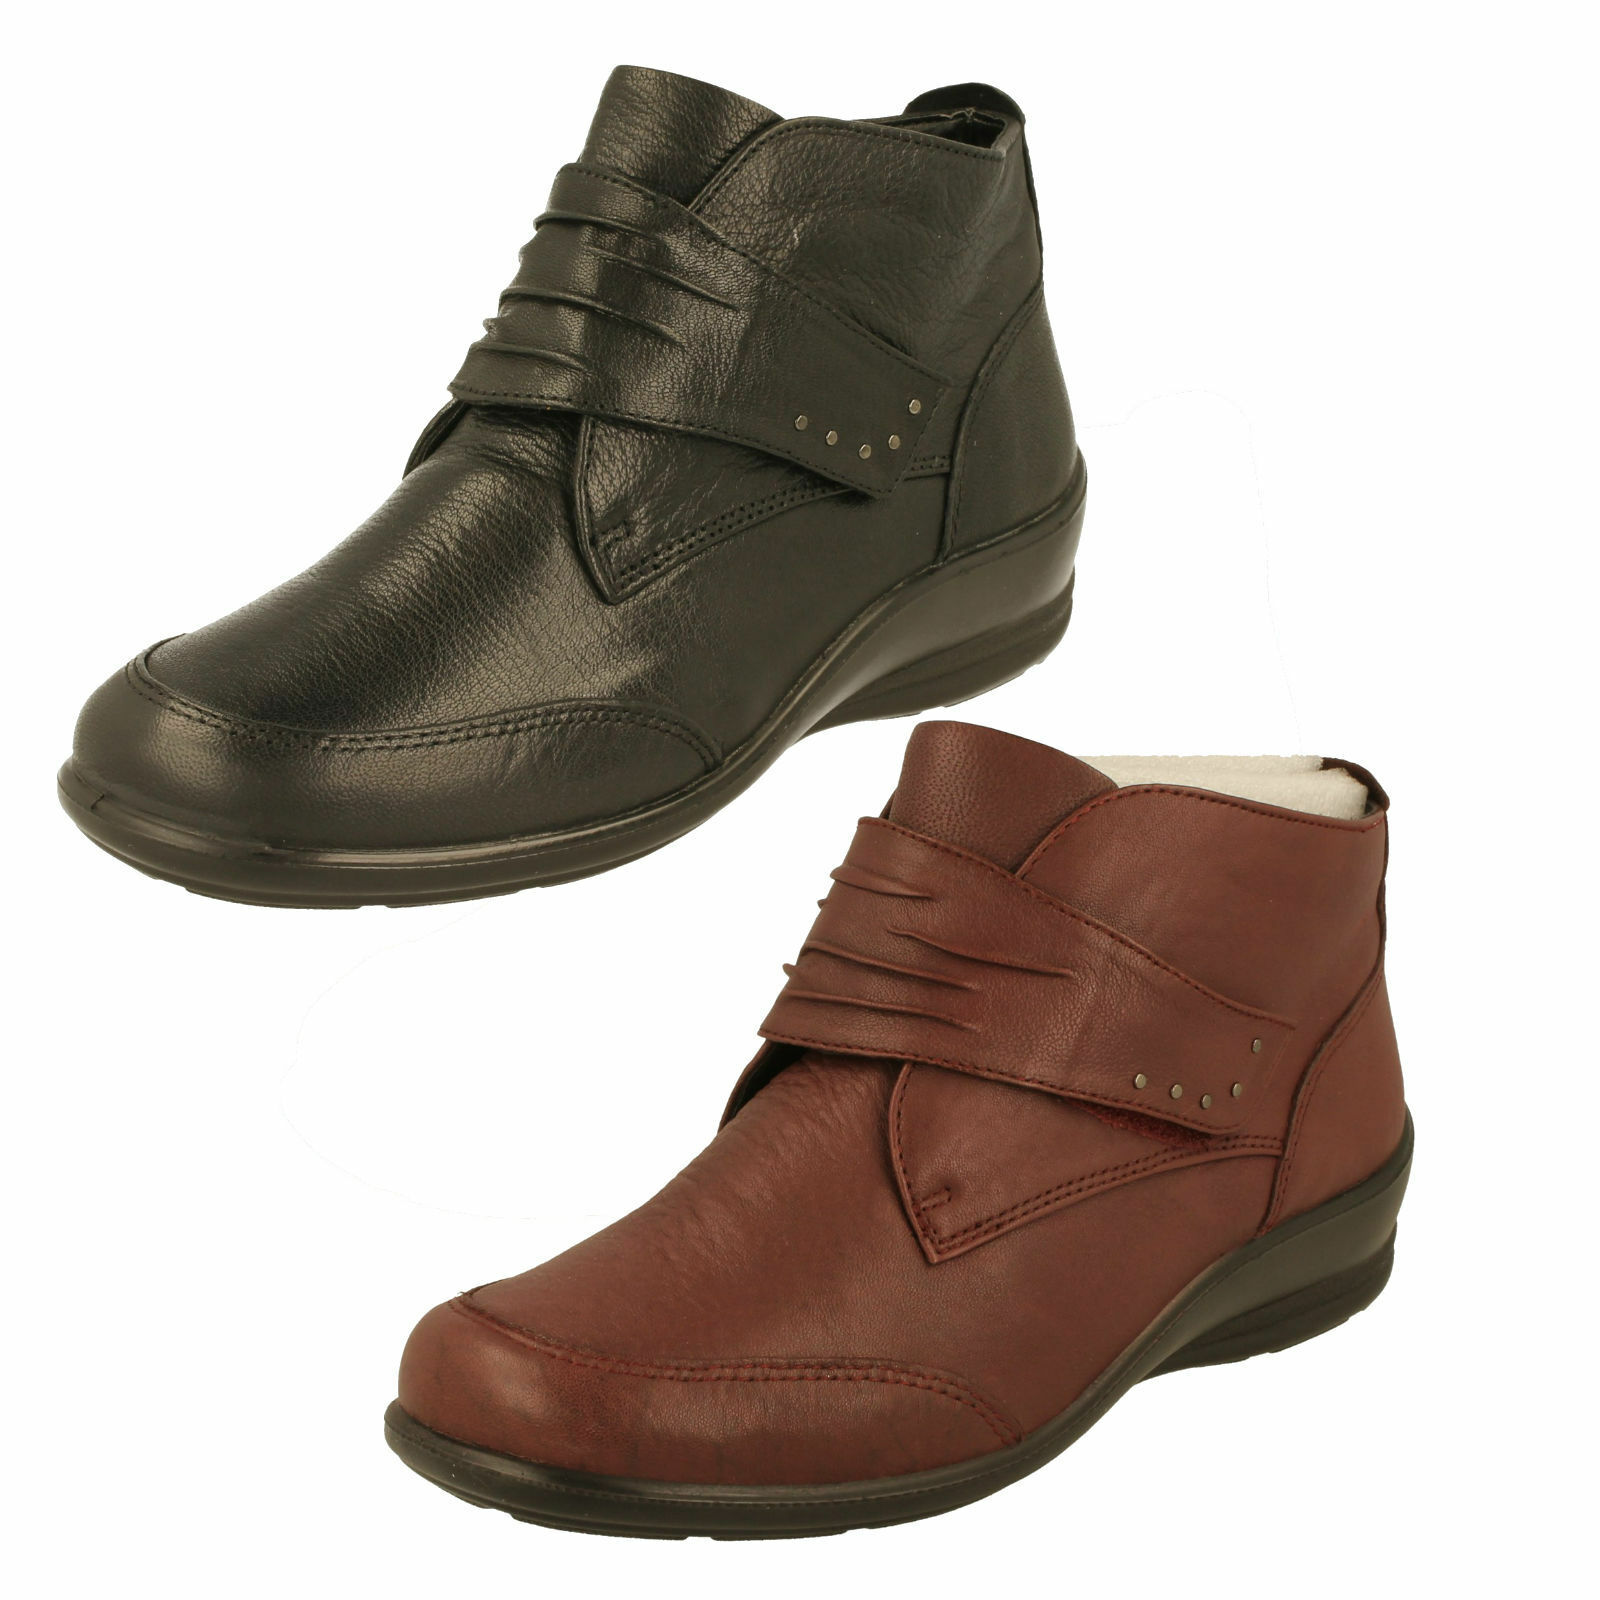 Grandes zapatos con descuento Ladies Padders Dual Fitting Ankle Boots - Tina